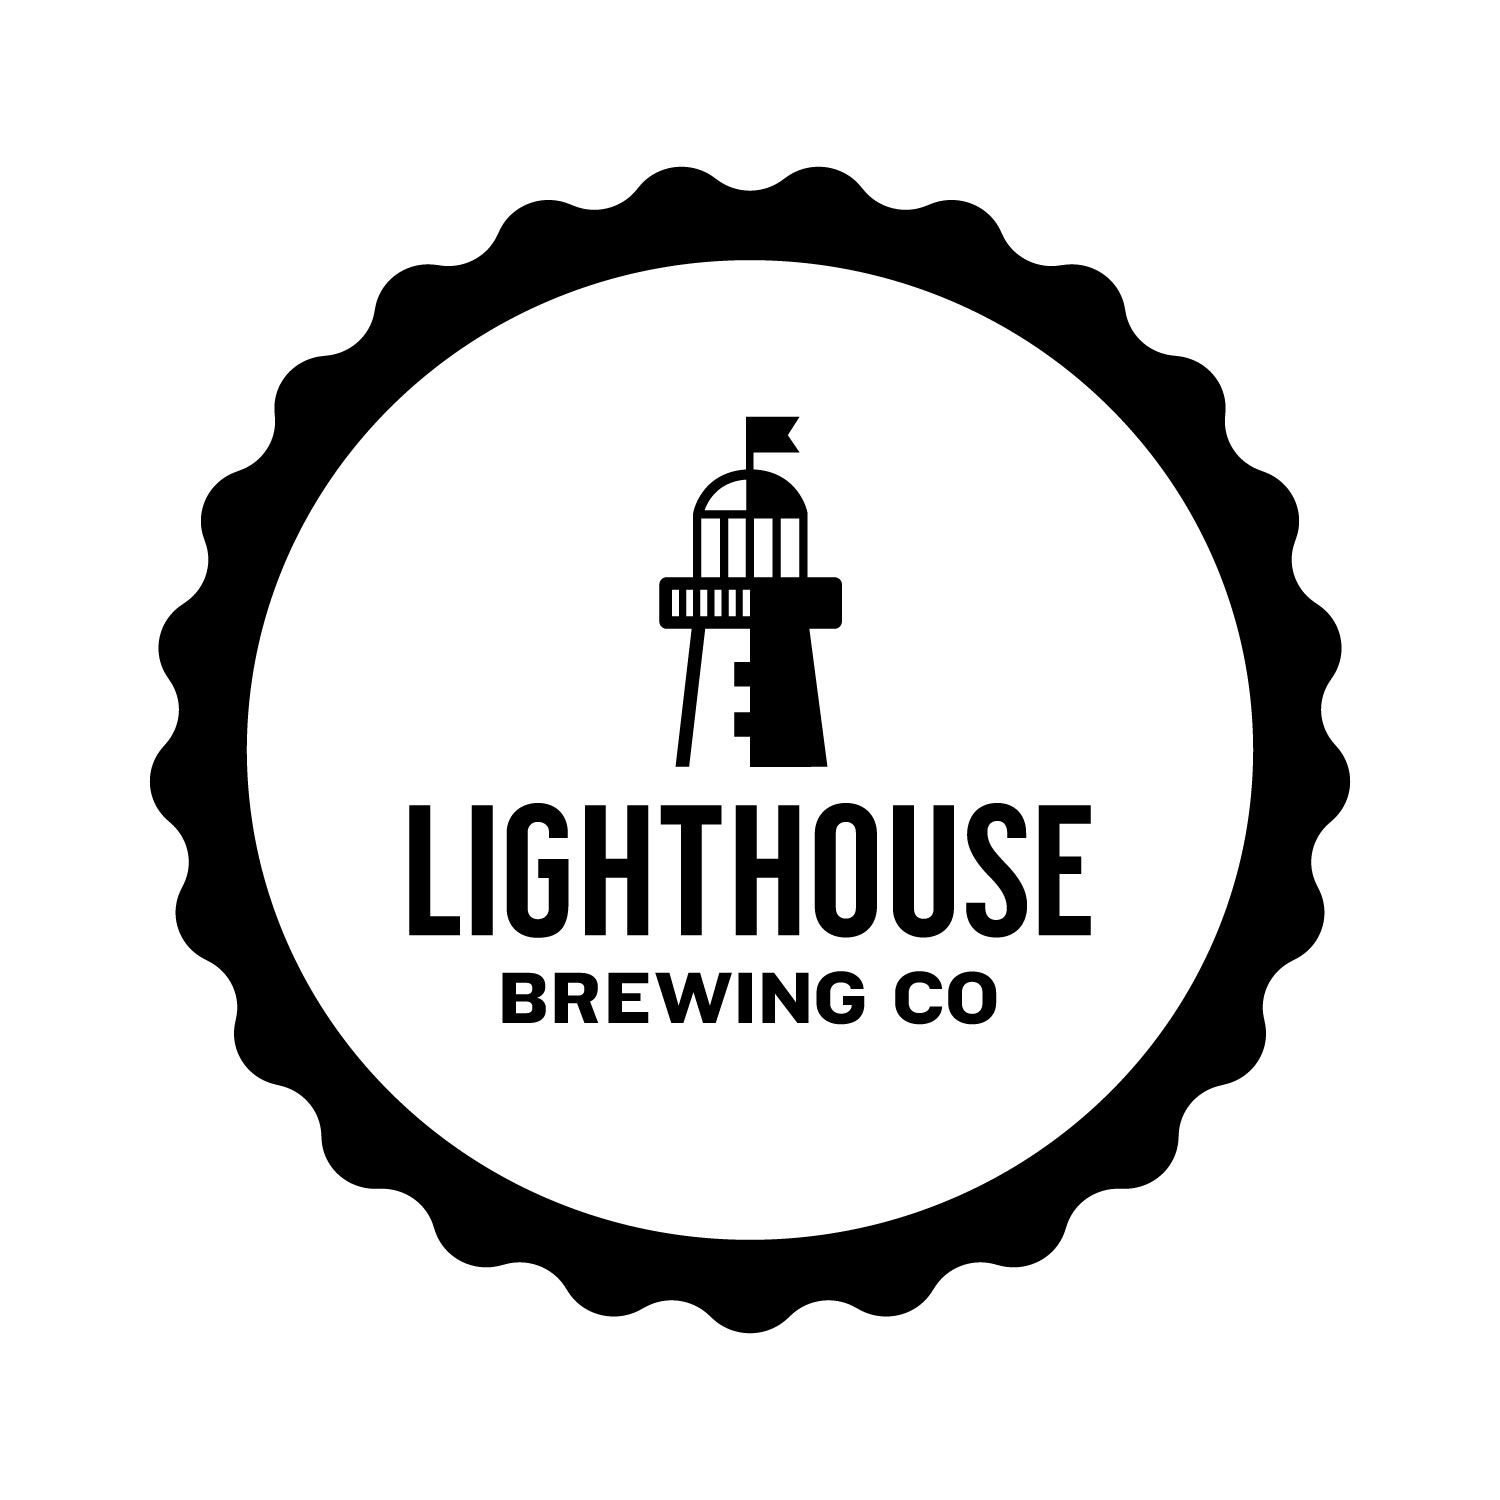 Lighthouse_BottleCapLogo.jpg